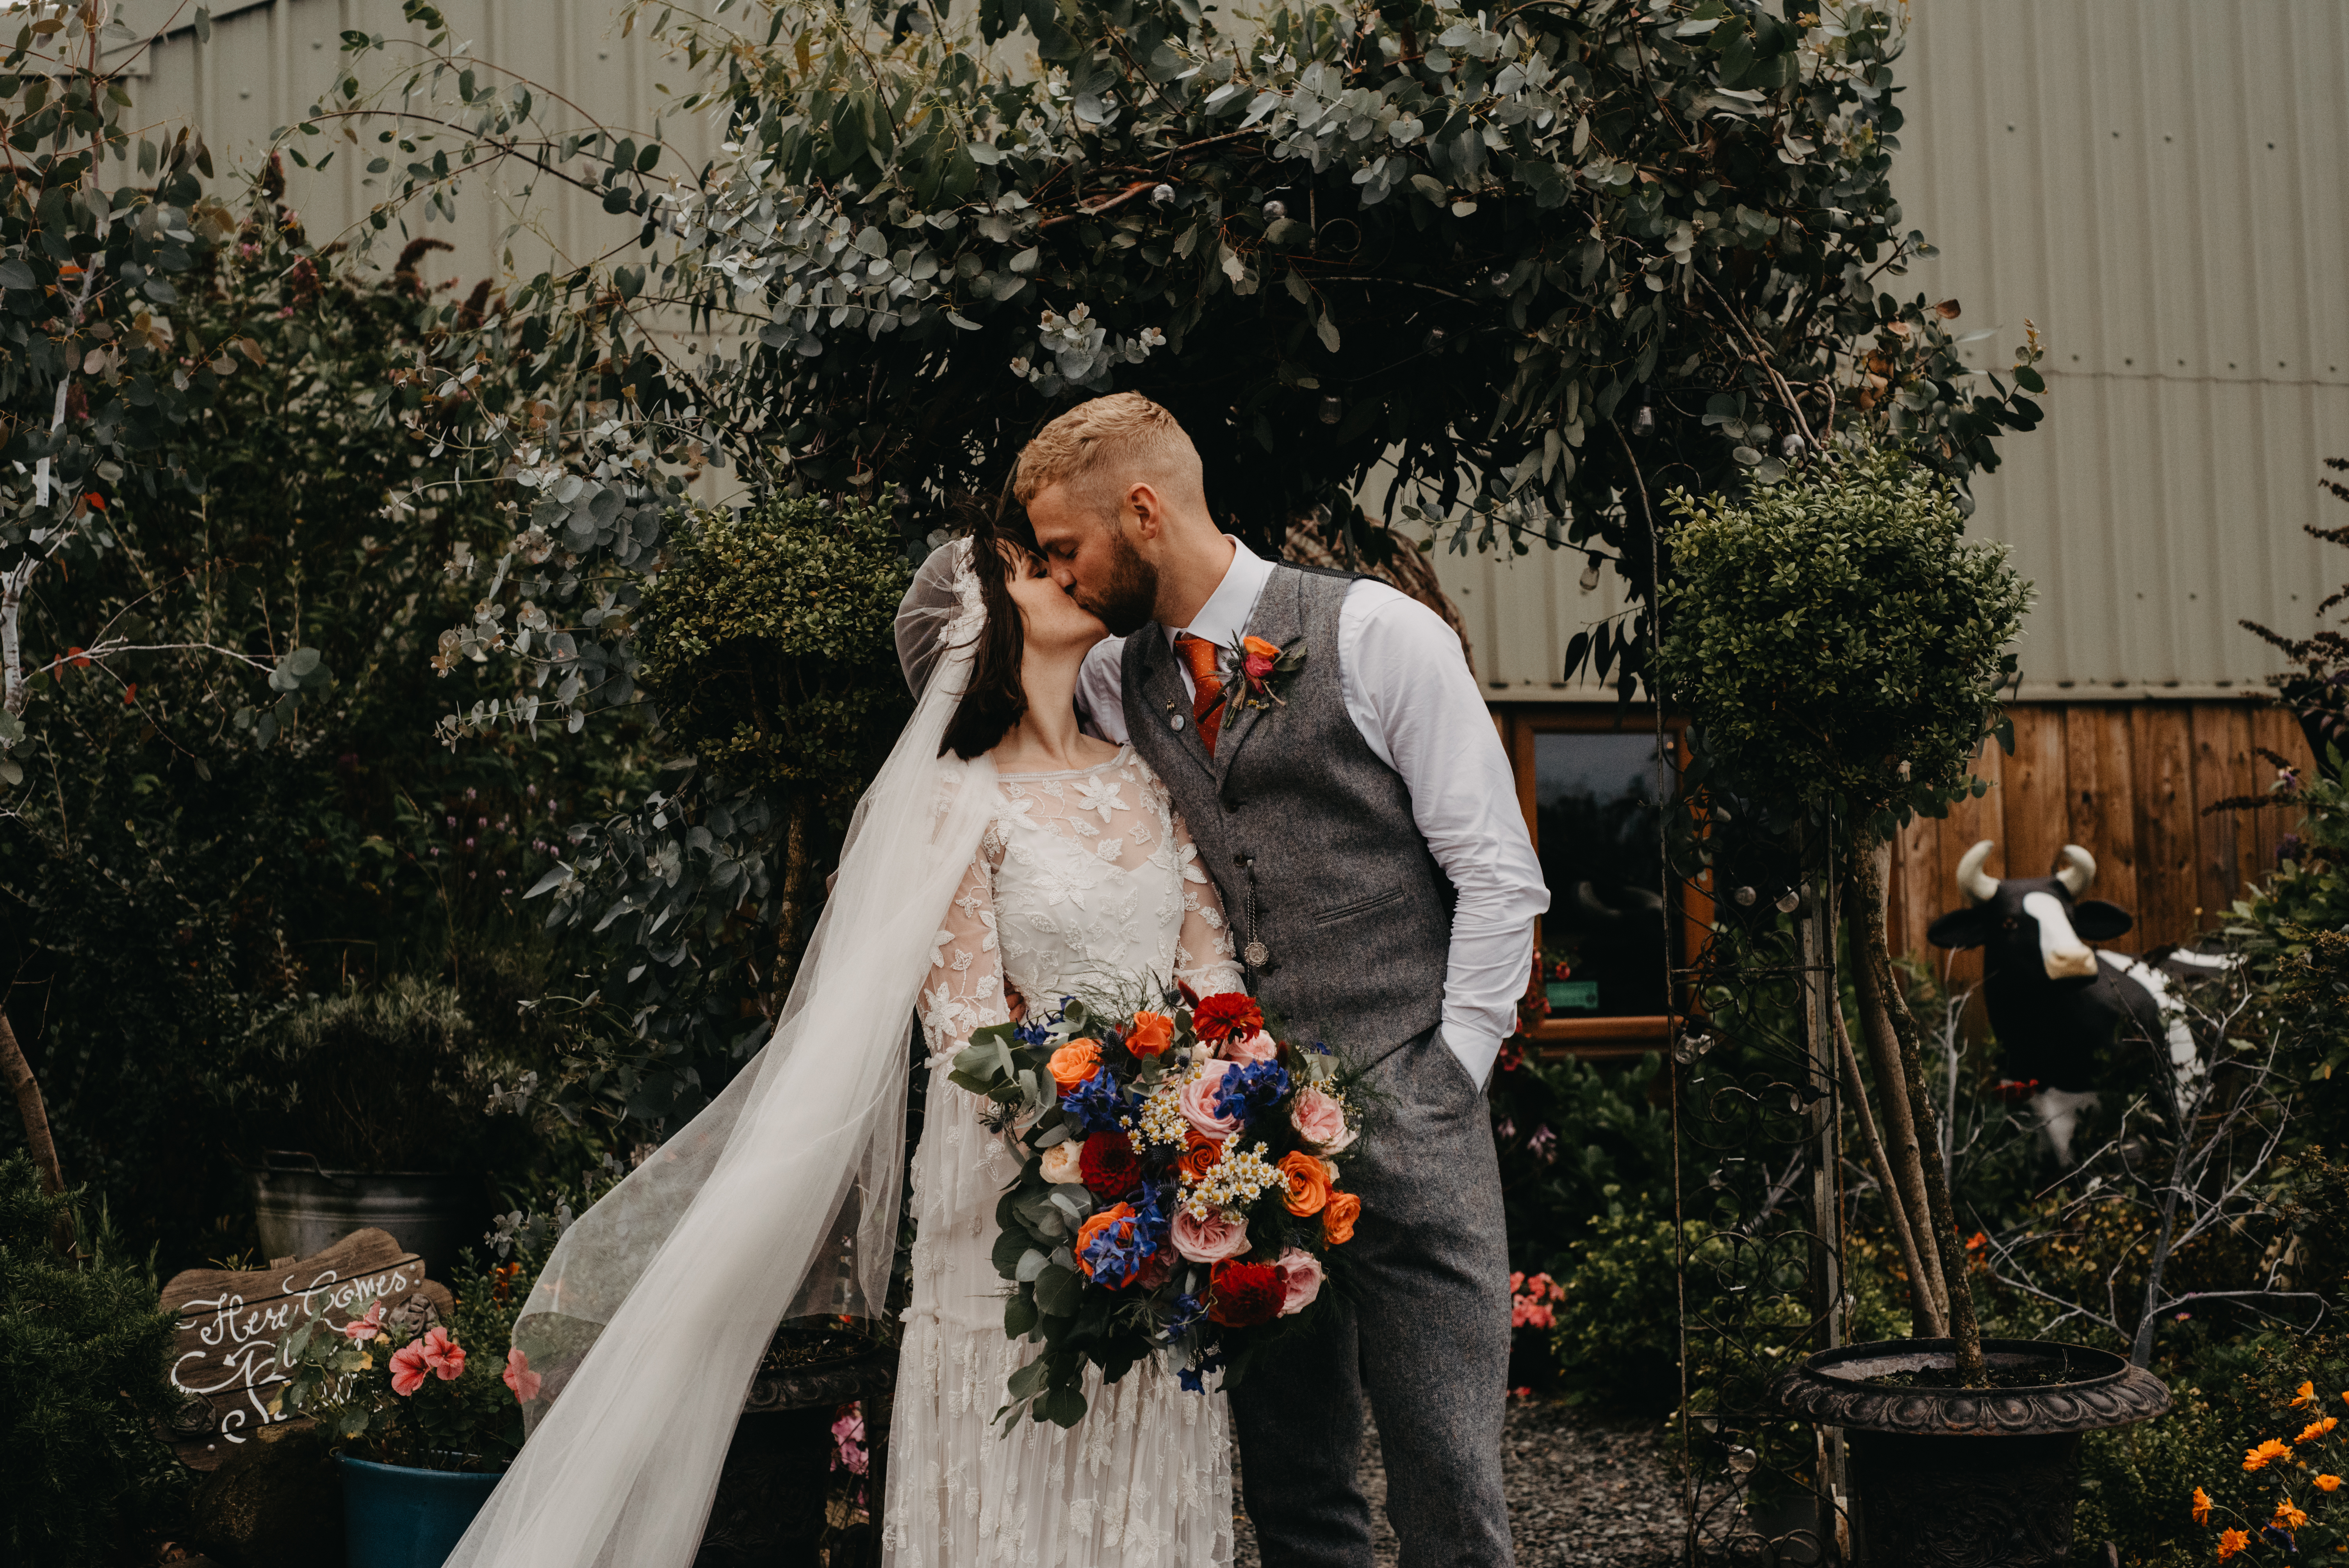 A bride and groom kiss at the entrance of their wedding reception